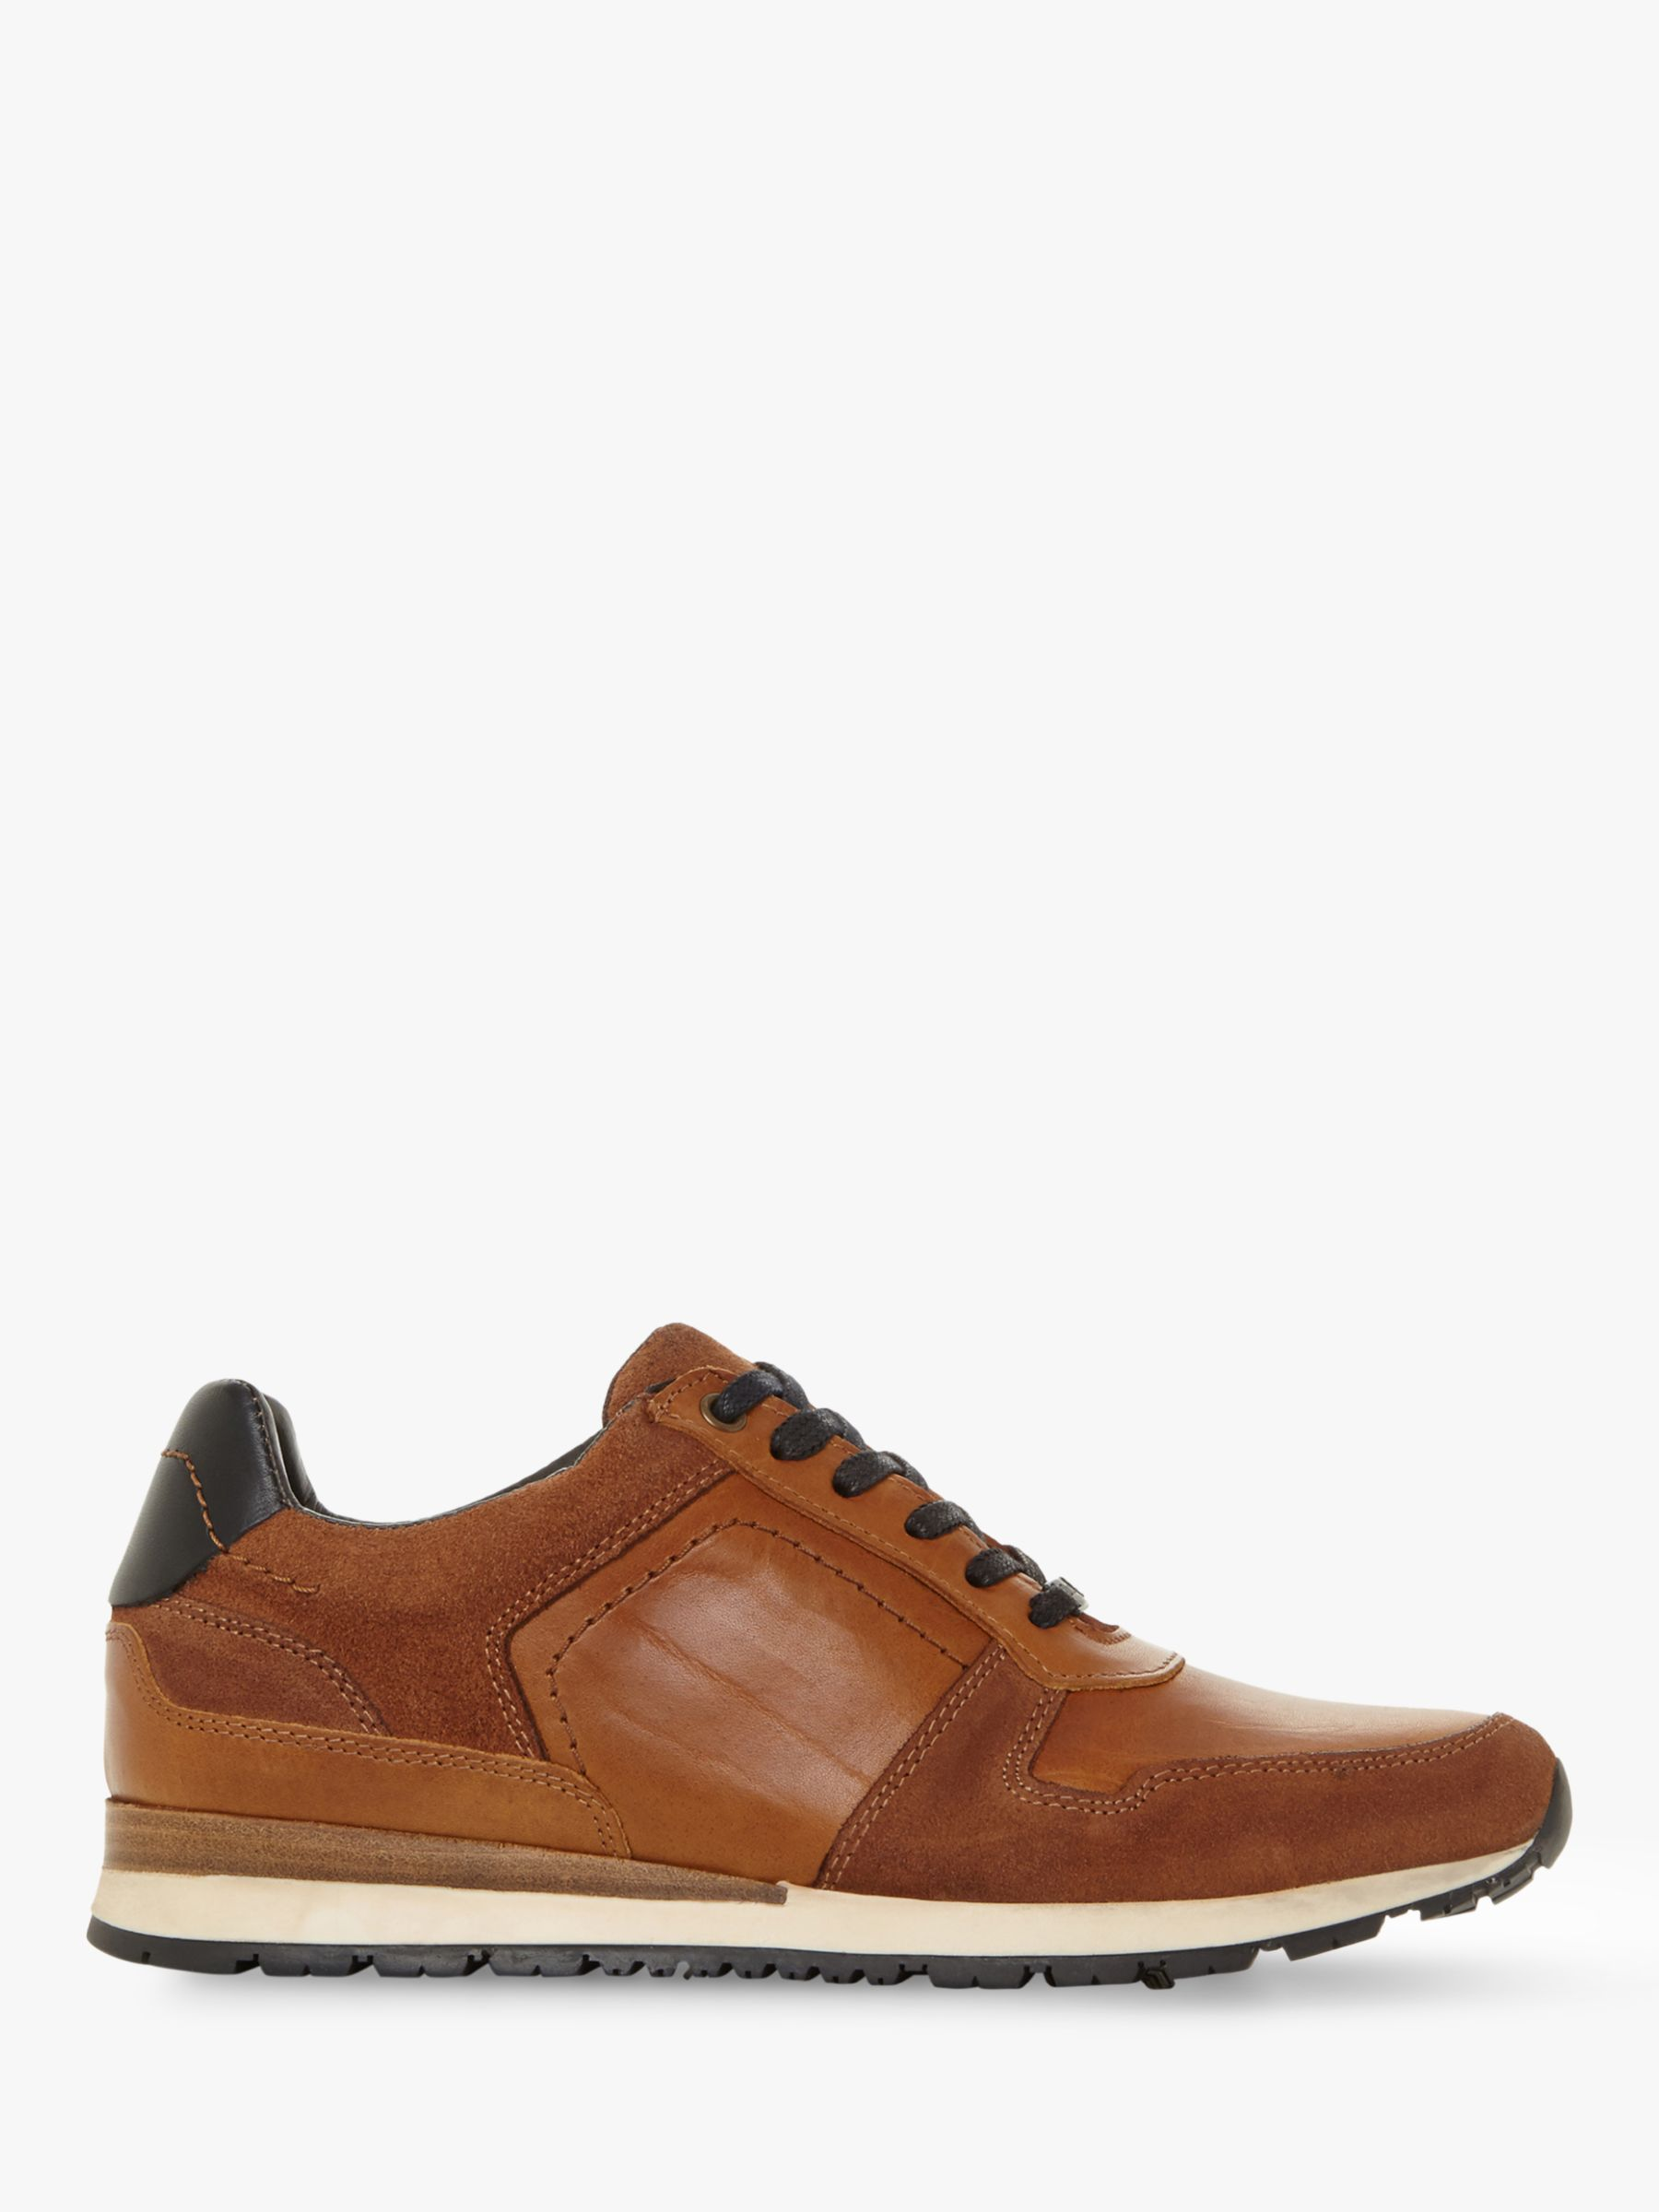 Dune Dune Tenor Leather Lace Up Trainers